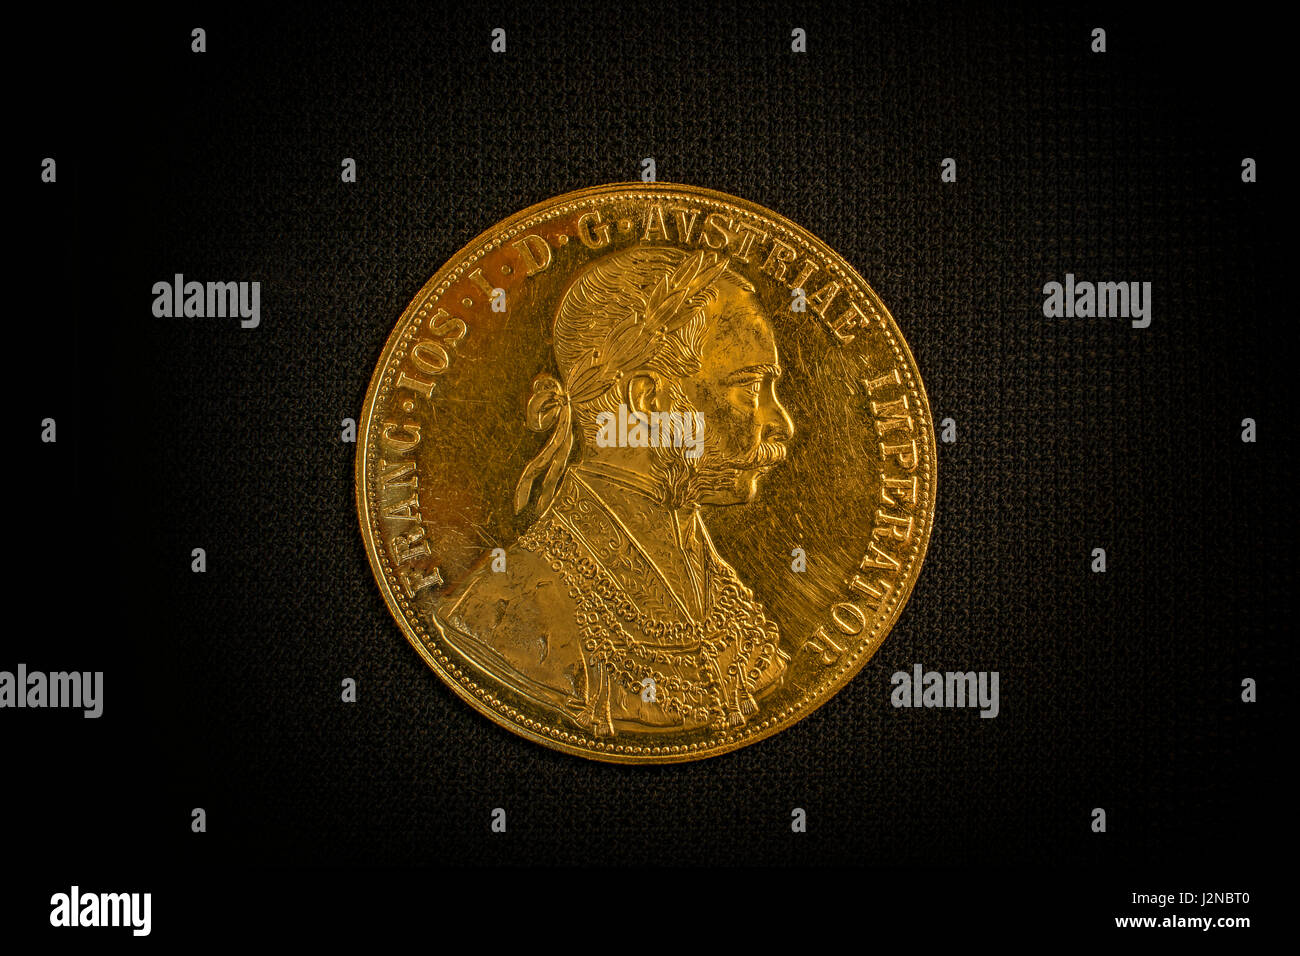 Close-up view of Austria-Hungary thaler, avers of golden coin-ducat from 1915 with Kaiser Franz Joseph I on dark - Stock Image